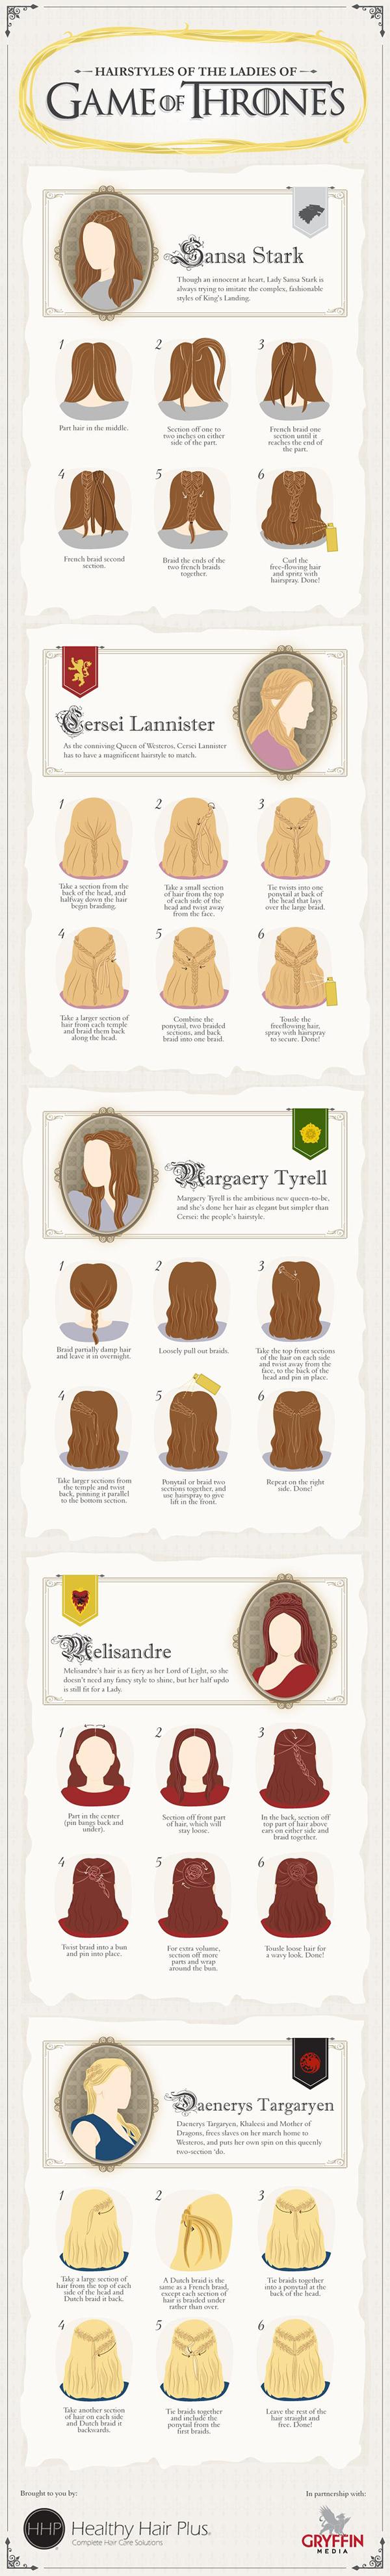 cooiffure-game-of-thrones